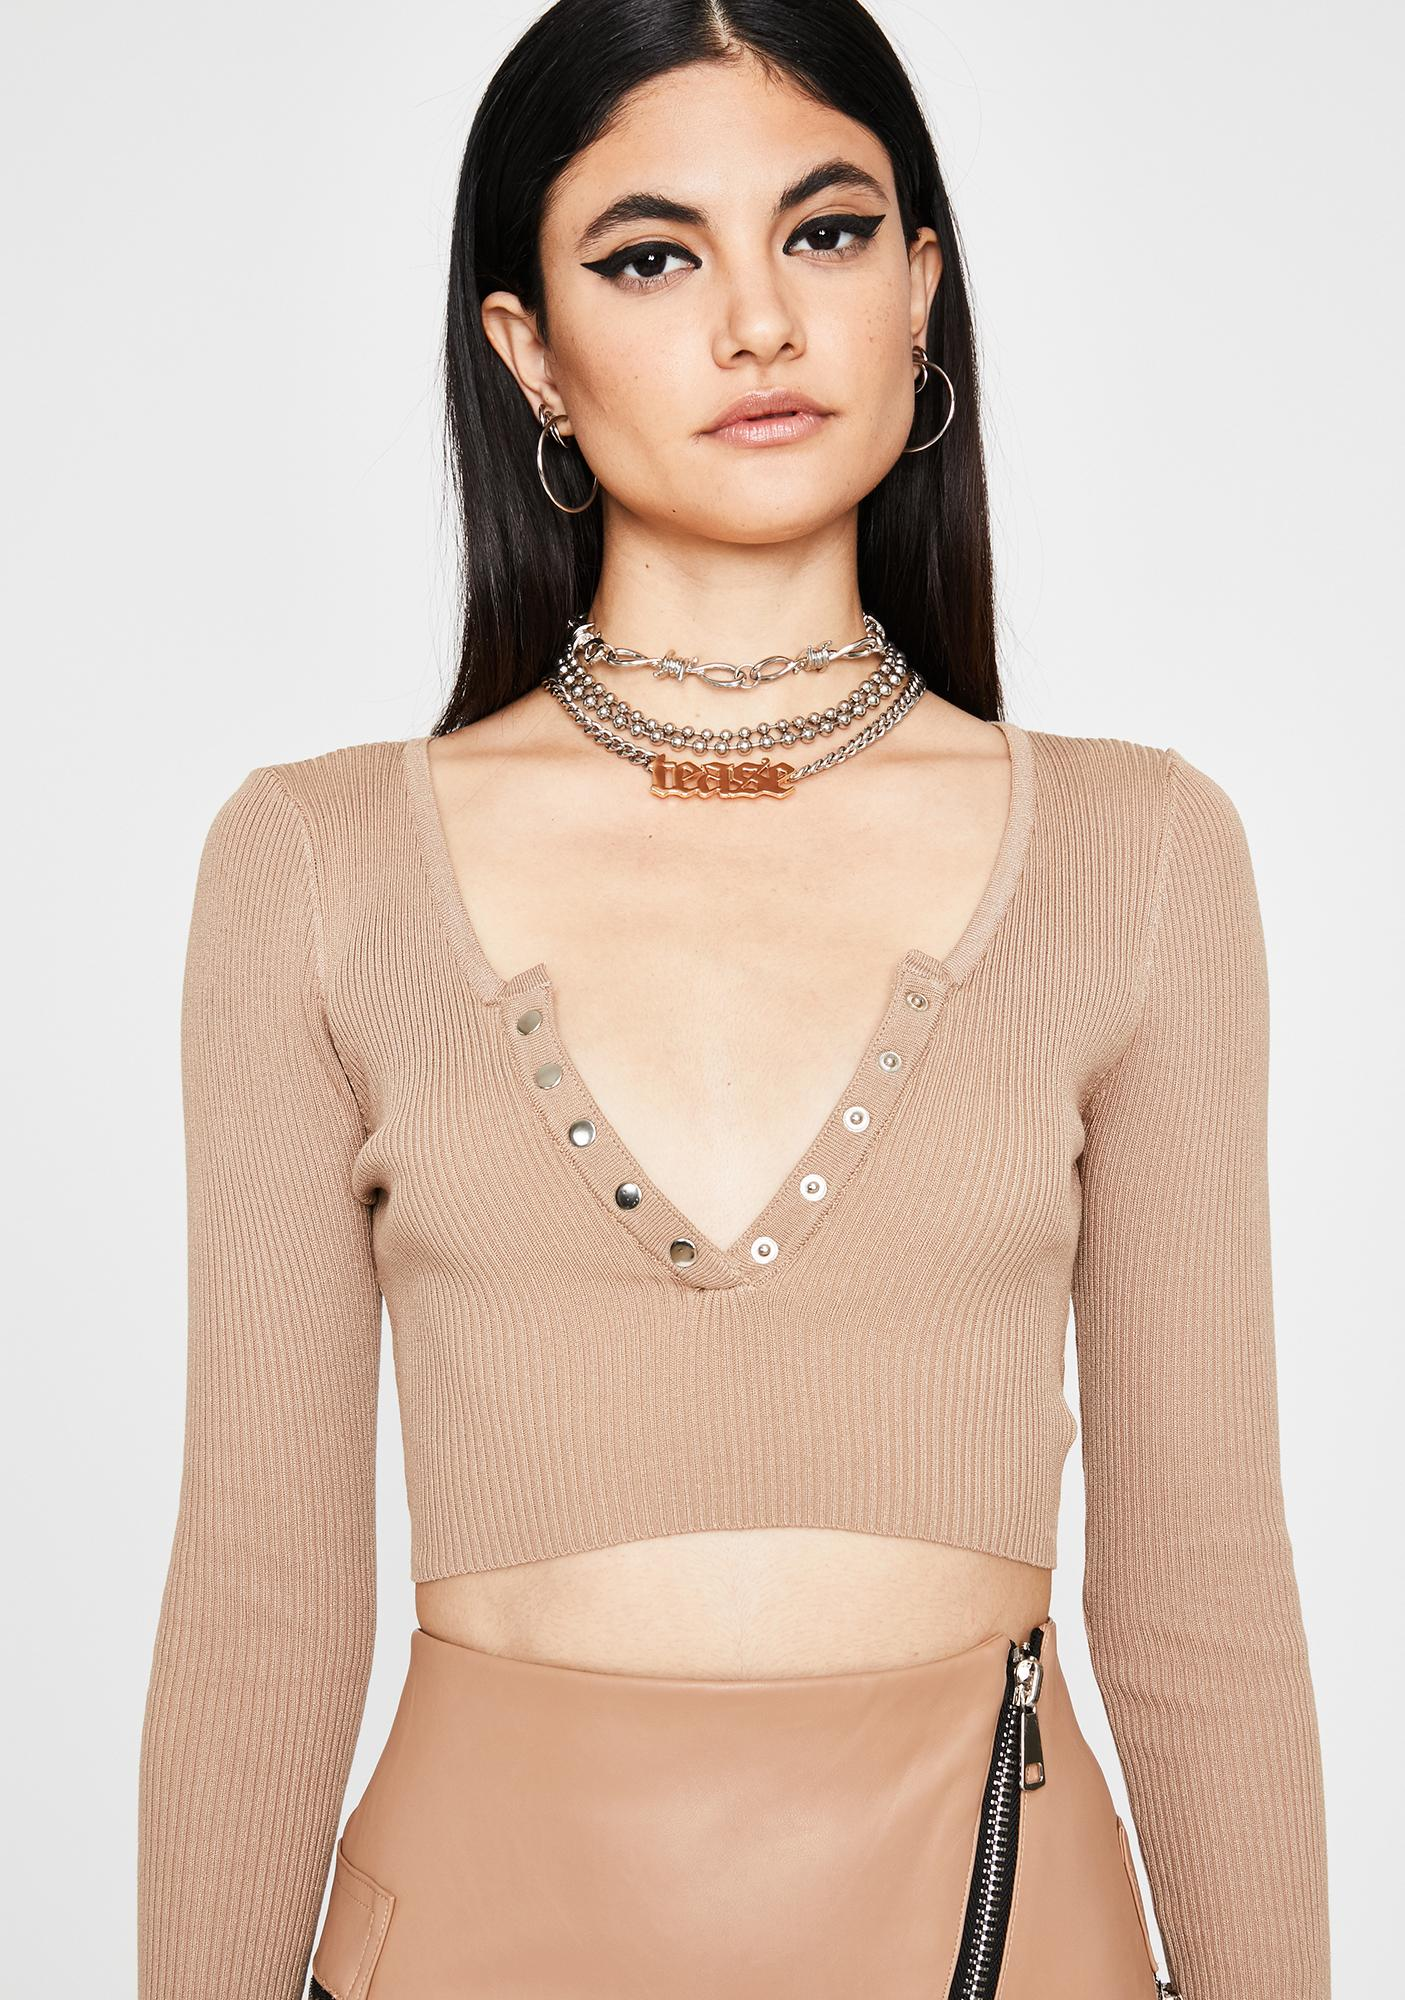 Honey Down To Chill Crop Top